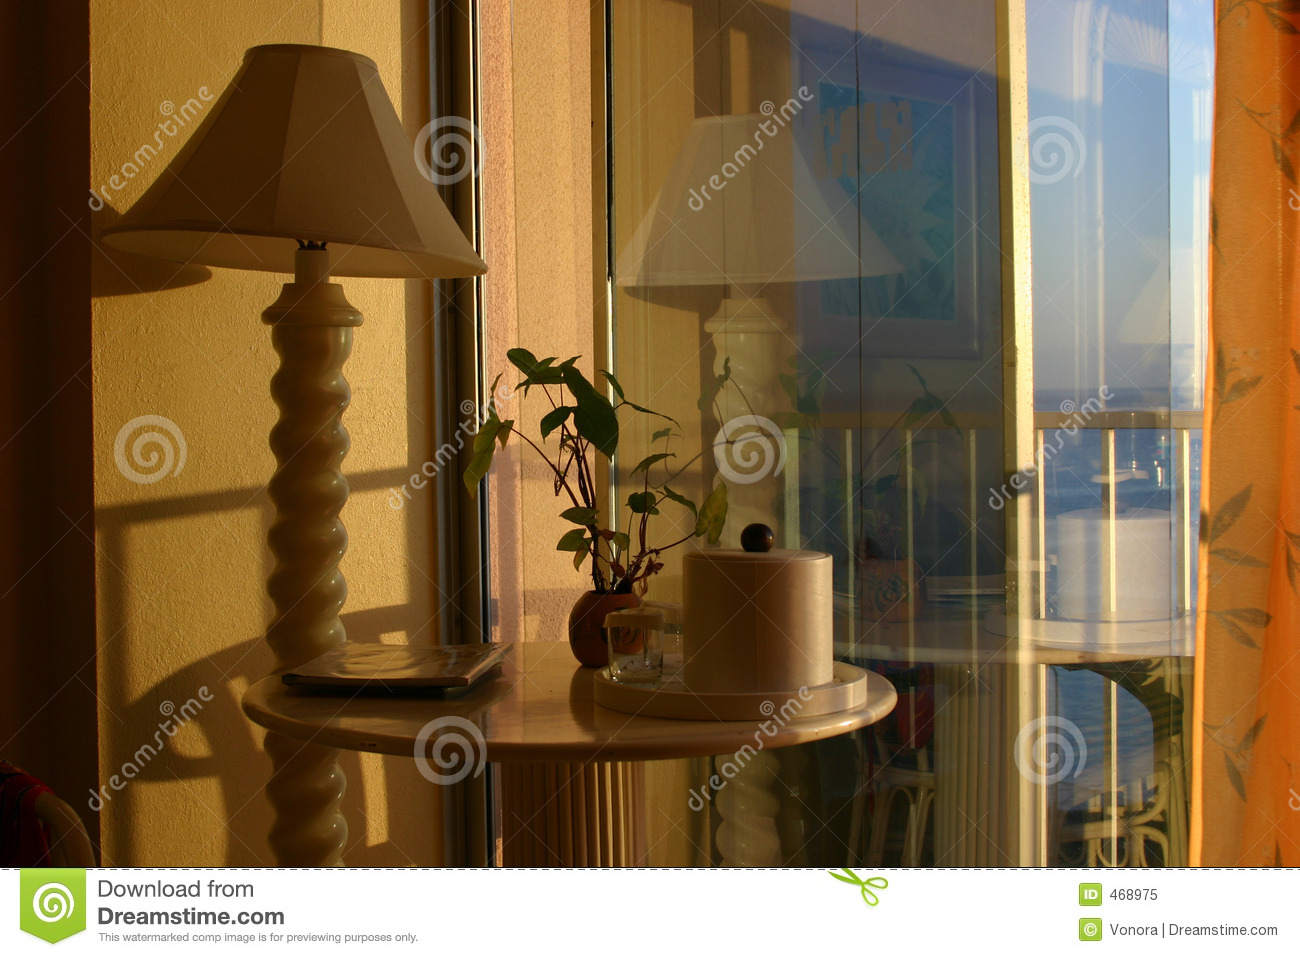 Download Hotel room stock image. Image of shade, lamp, blue, reflection - 468975